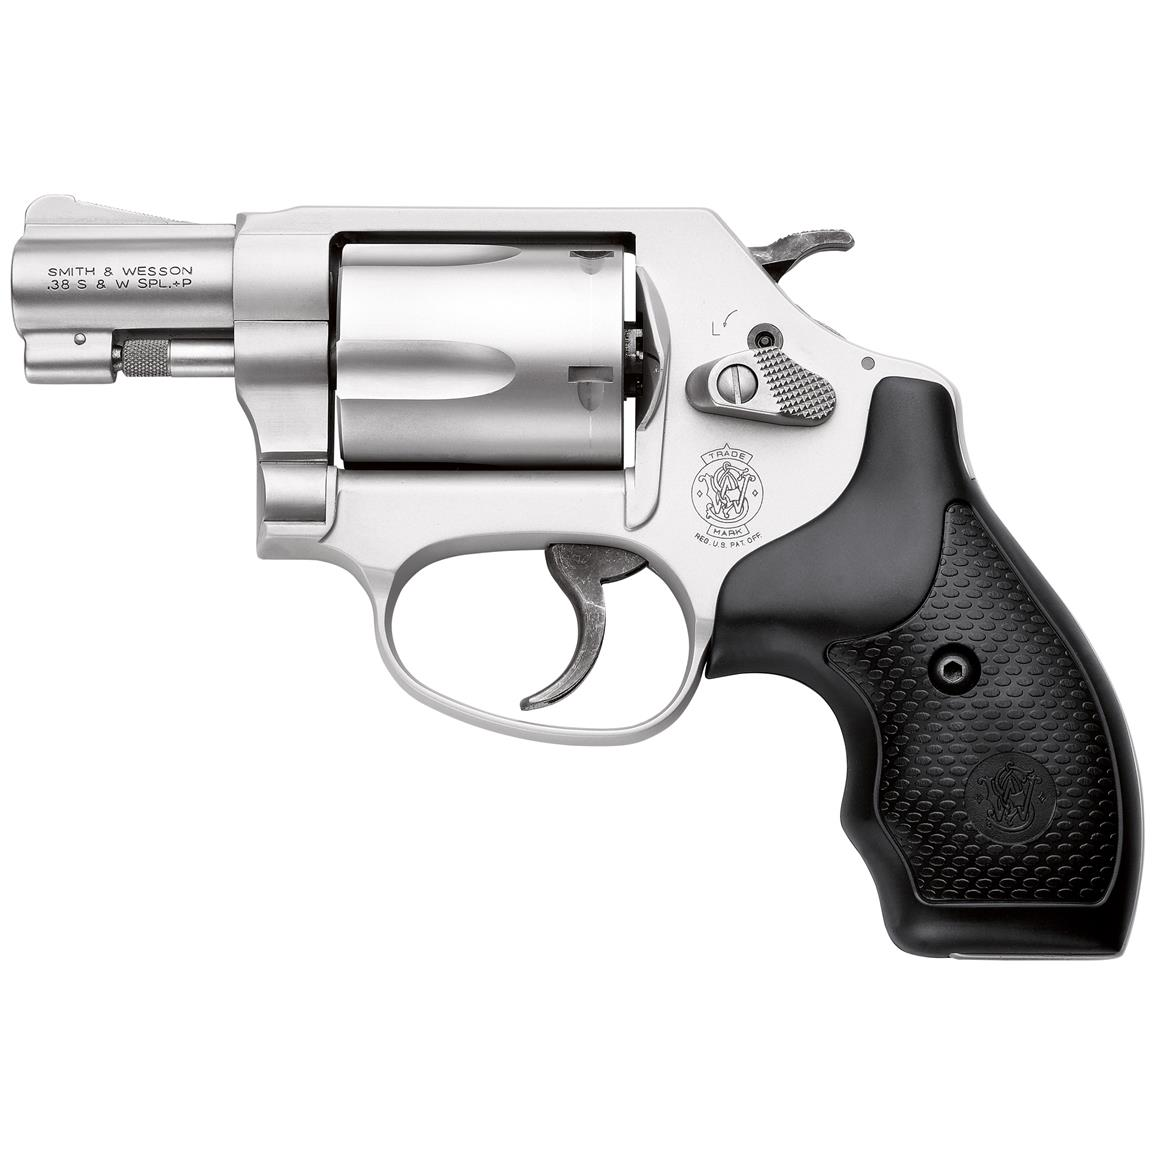 "Smith & Wesson Airweight 637, Revolver, .38 Special, 1.875"" Barrel, 5 Rounds"